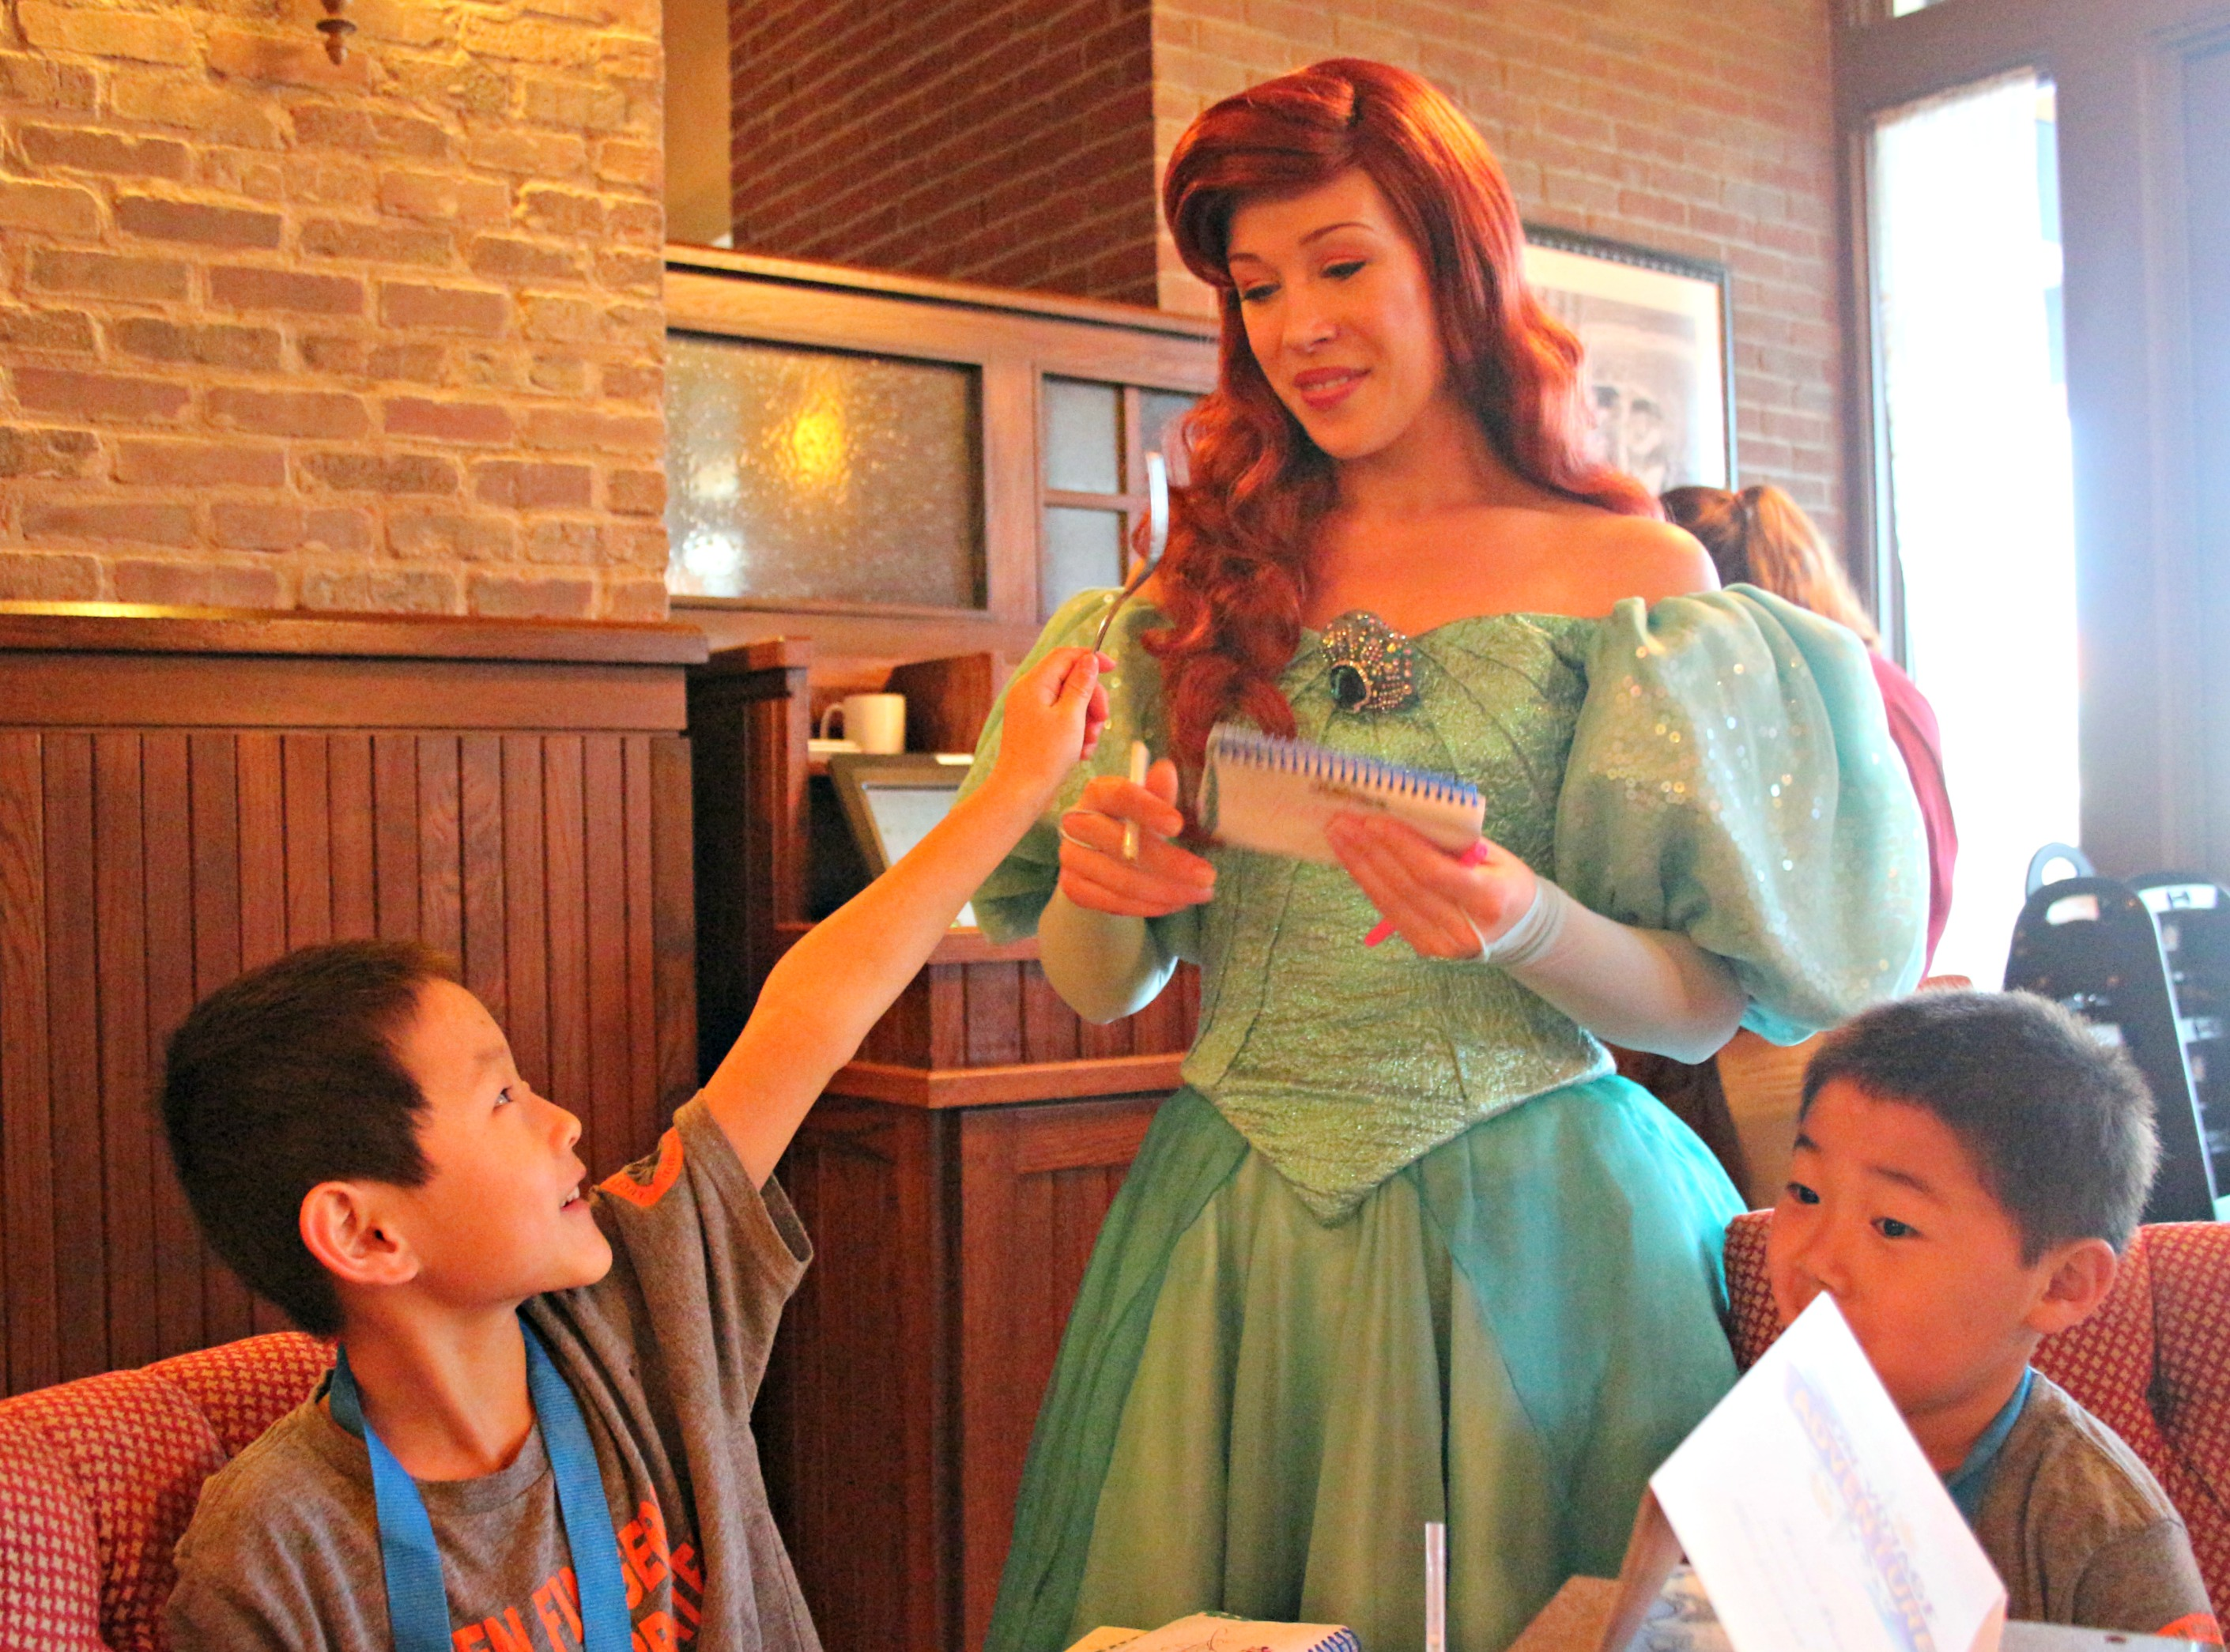 You can meet Ariel at the Bon Voyage Adventure Breakfast at Trattoria al Forno